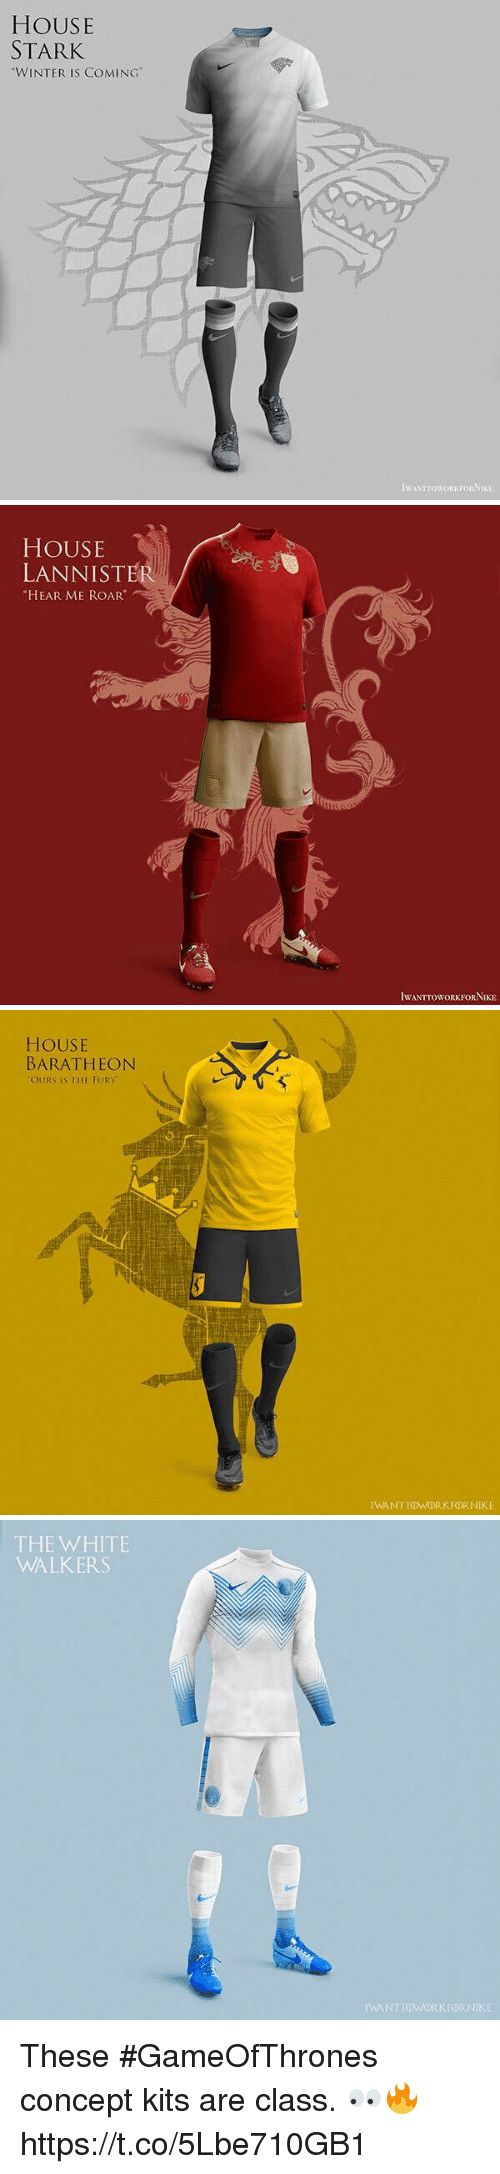 "Soccer, Winter, and House: HOUSE  STARK  ""WINTER IS COMING""  IWANTTOWORKFORNIKE   HOUSE  LANNISTER  HEAR ME ROAR  IWANTTOWORKFORNIKE   HOUSE  BARATHEON  OURS IS THE FURY  IWANTTOWORKFORNIKE   THE WHITE  WALKERS  IWANTTOWORKFORNIKE These #GameOfThrones concept kits are class. 👀🔥 https://t.co/5Lbe710GB1"